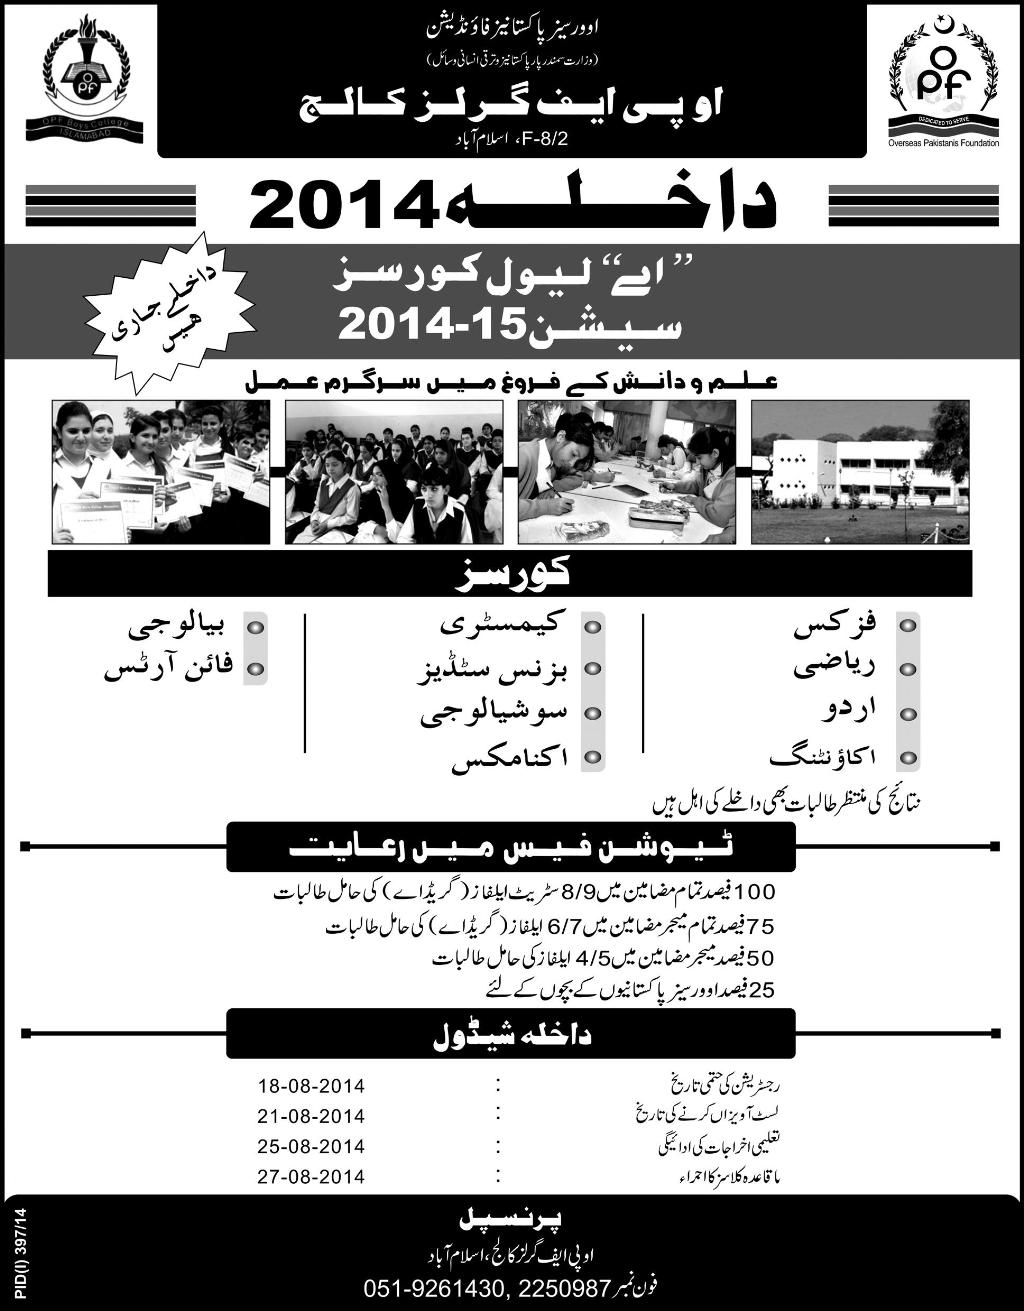 Overseas Pakistanis Foundation (OPF) Islamabad Admission Notice 2014-2015 for A Level Courses